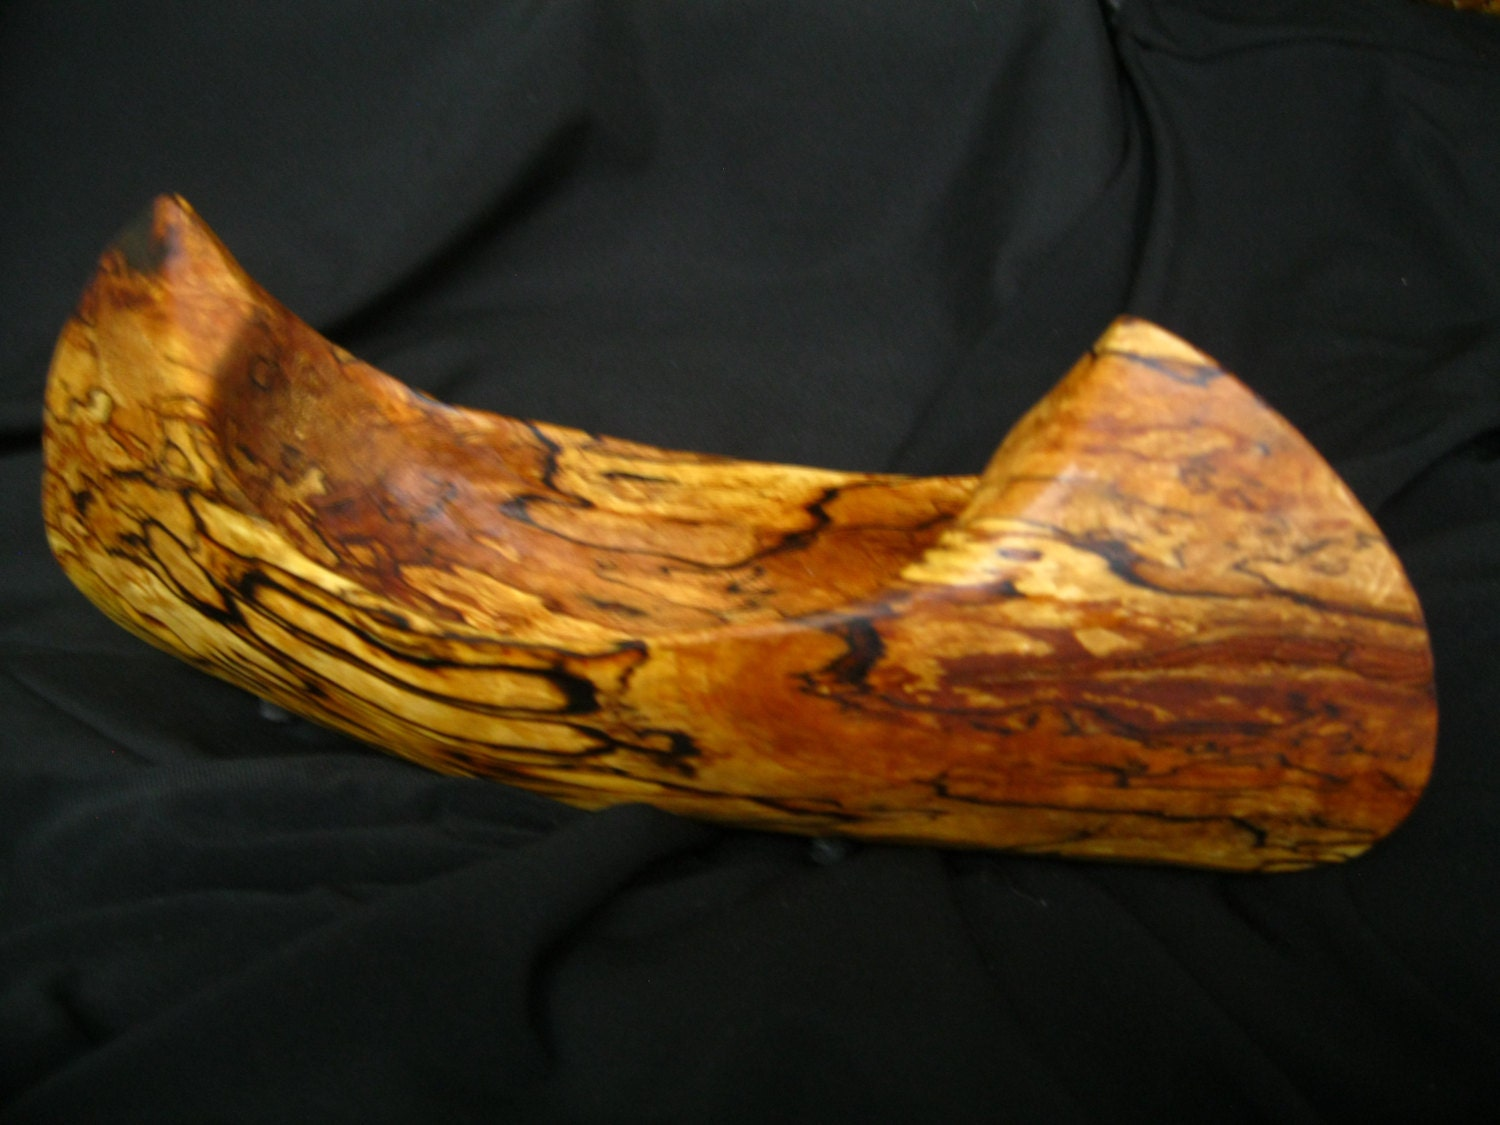 Hand carved rare west coast sugar maple canoe polished with